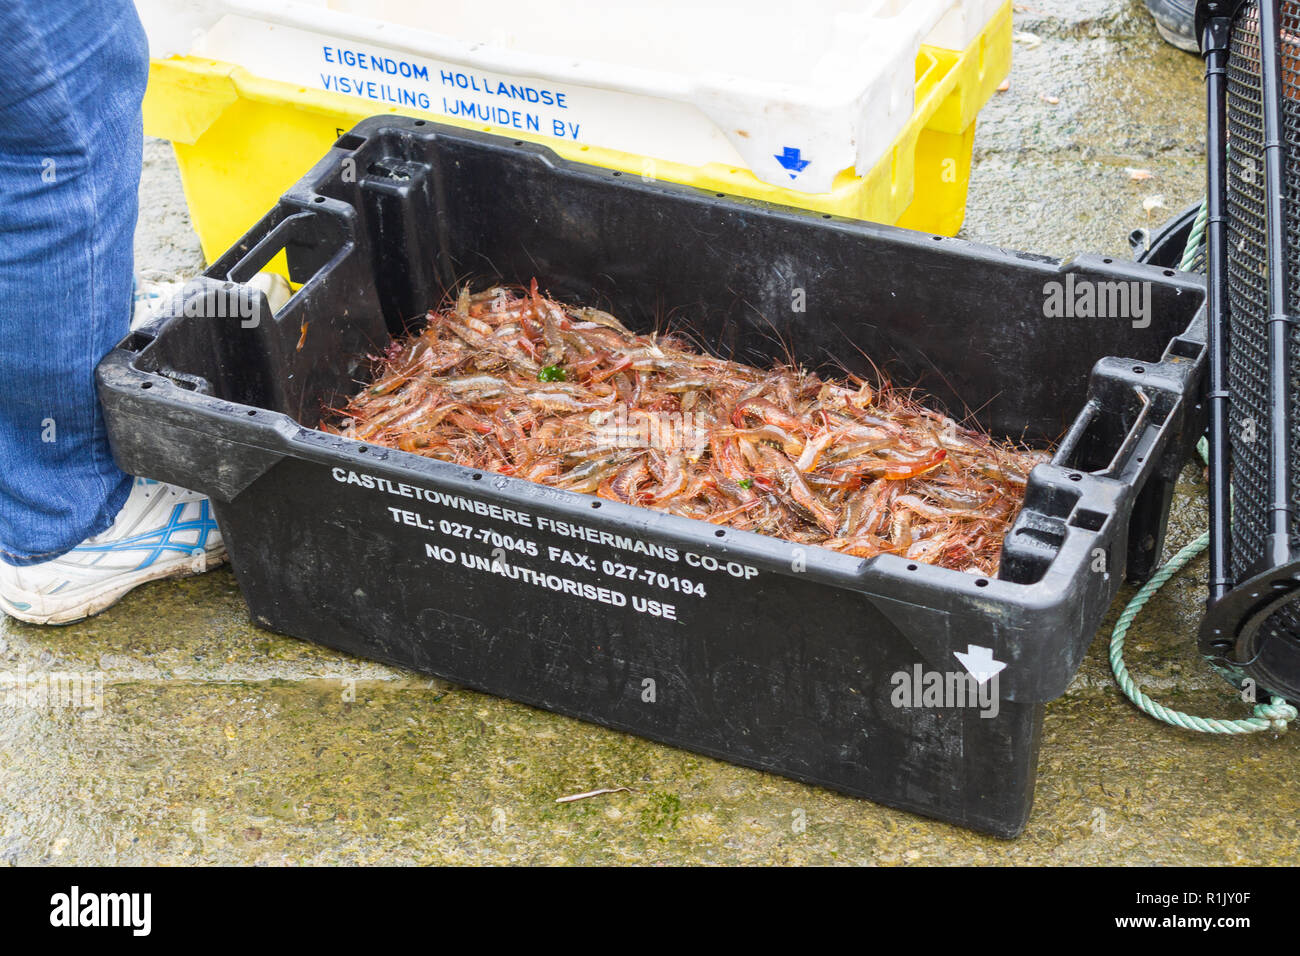 castletownshend-west-cork-ireland-november-13th-2018-despite-the-recent-storms-leaving-high-seas-and-miserable-weather-the-local-shrimp-fishermen-still-have-get-the-catch-in-this-fine-catch-of-fresh-shrimp-will-be-graded-processed-and-frozen-locally-then-shipped-off-to-spain-for-their-housewives-to-enjoy-adding-to-the-reputation-of-the-irish-fishing-industry-to-produce-a-world-class-product-credit-aphperspectivealamy-live-news-R1JY0F.jpg